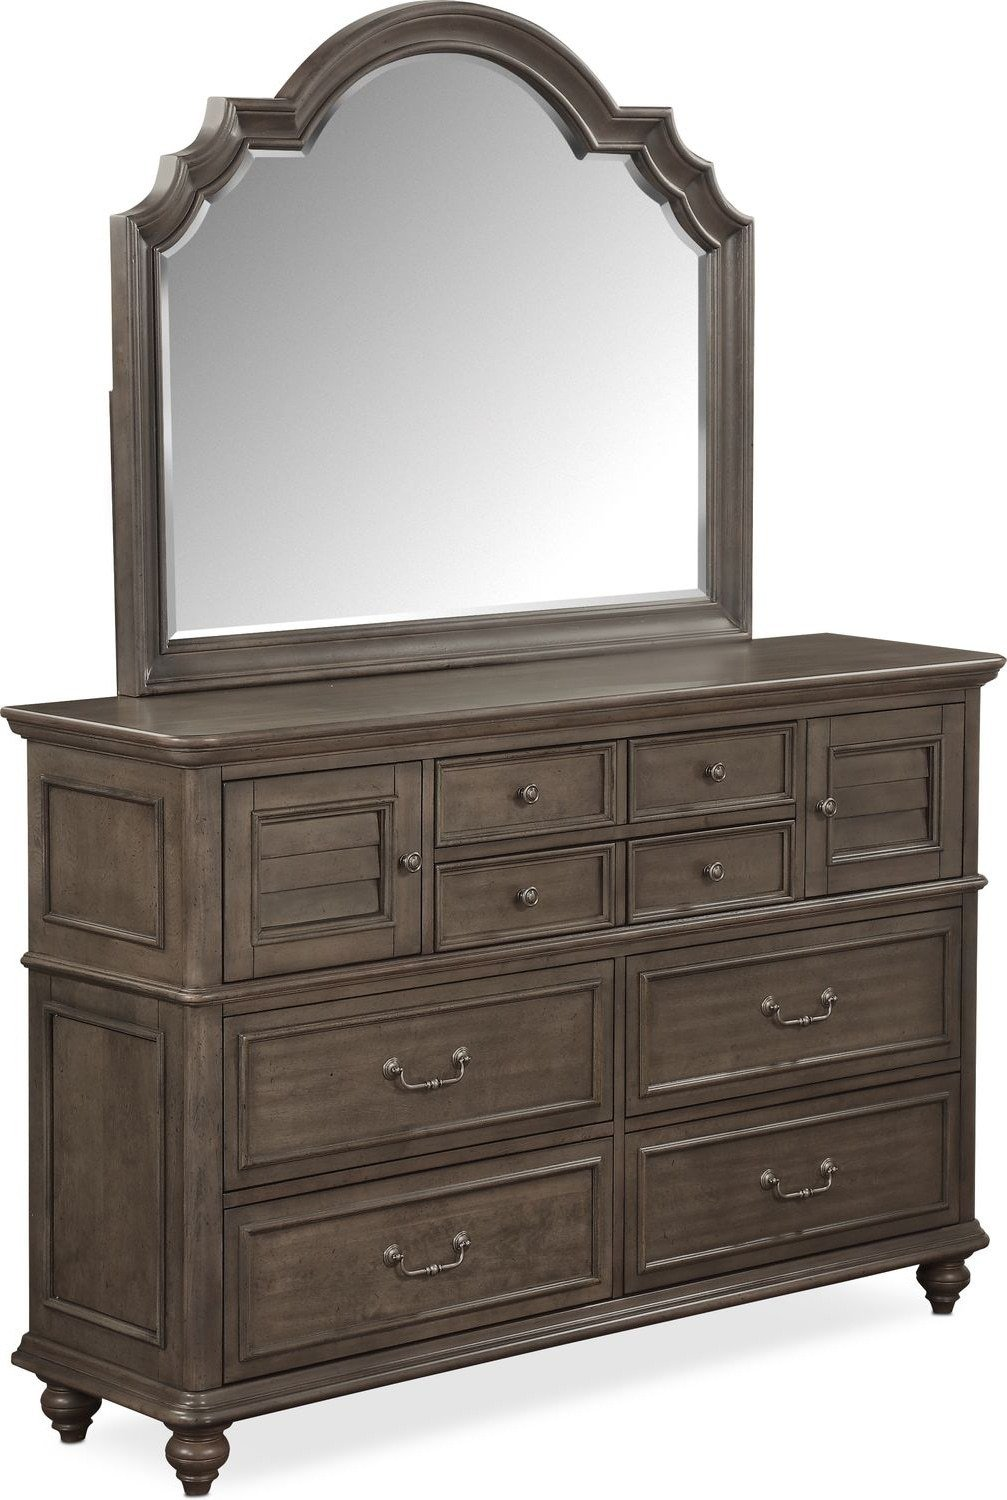 Best Charleston Dresser And Mirror Gray Value City With Pictures